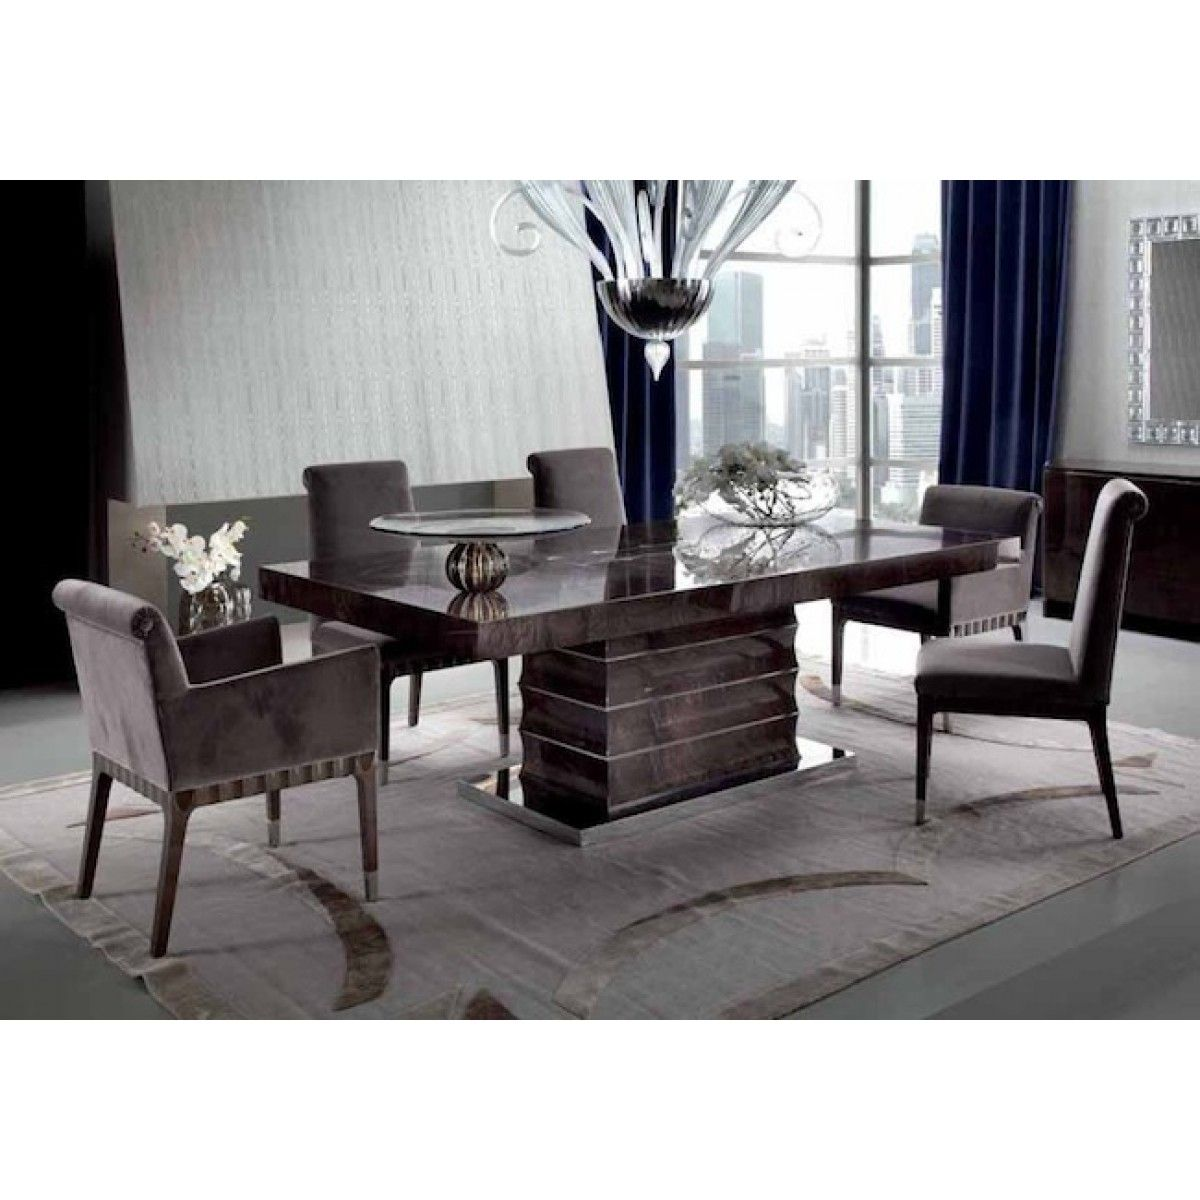 Giorgio Collection Absolute Dining Set An Art Deco Inspired Beautifully Crafted Italian High Gloss